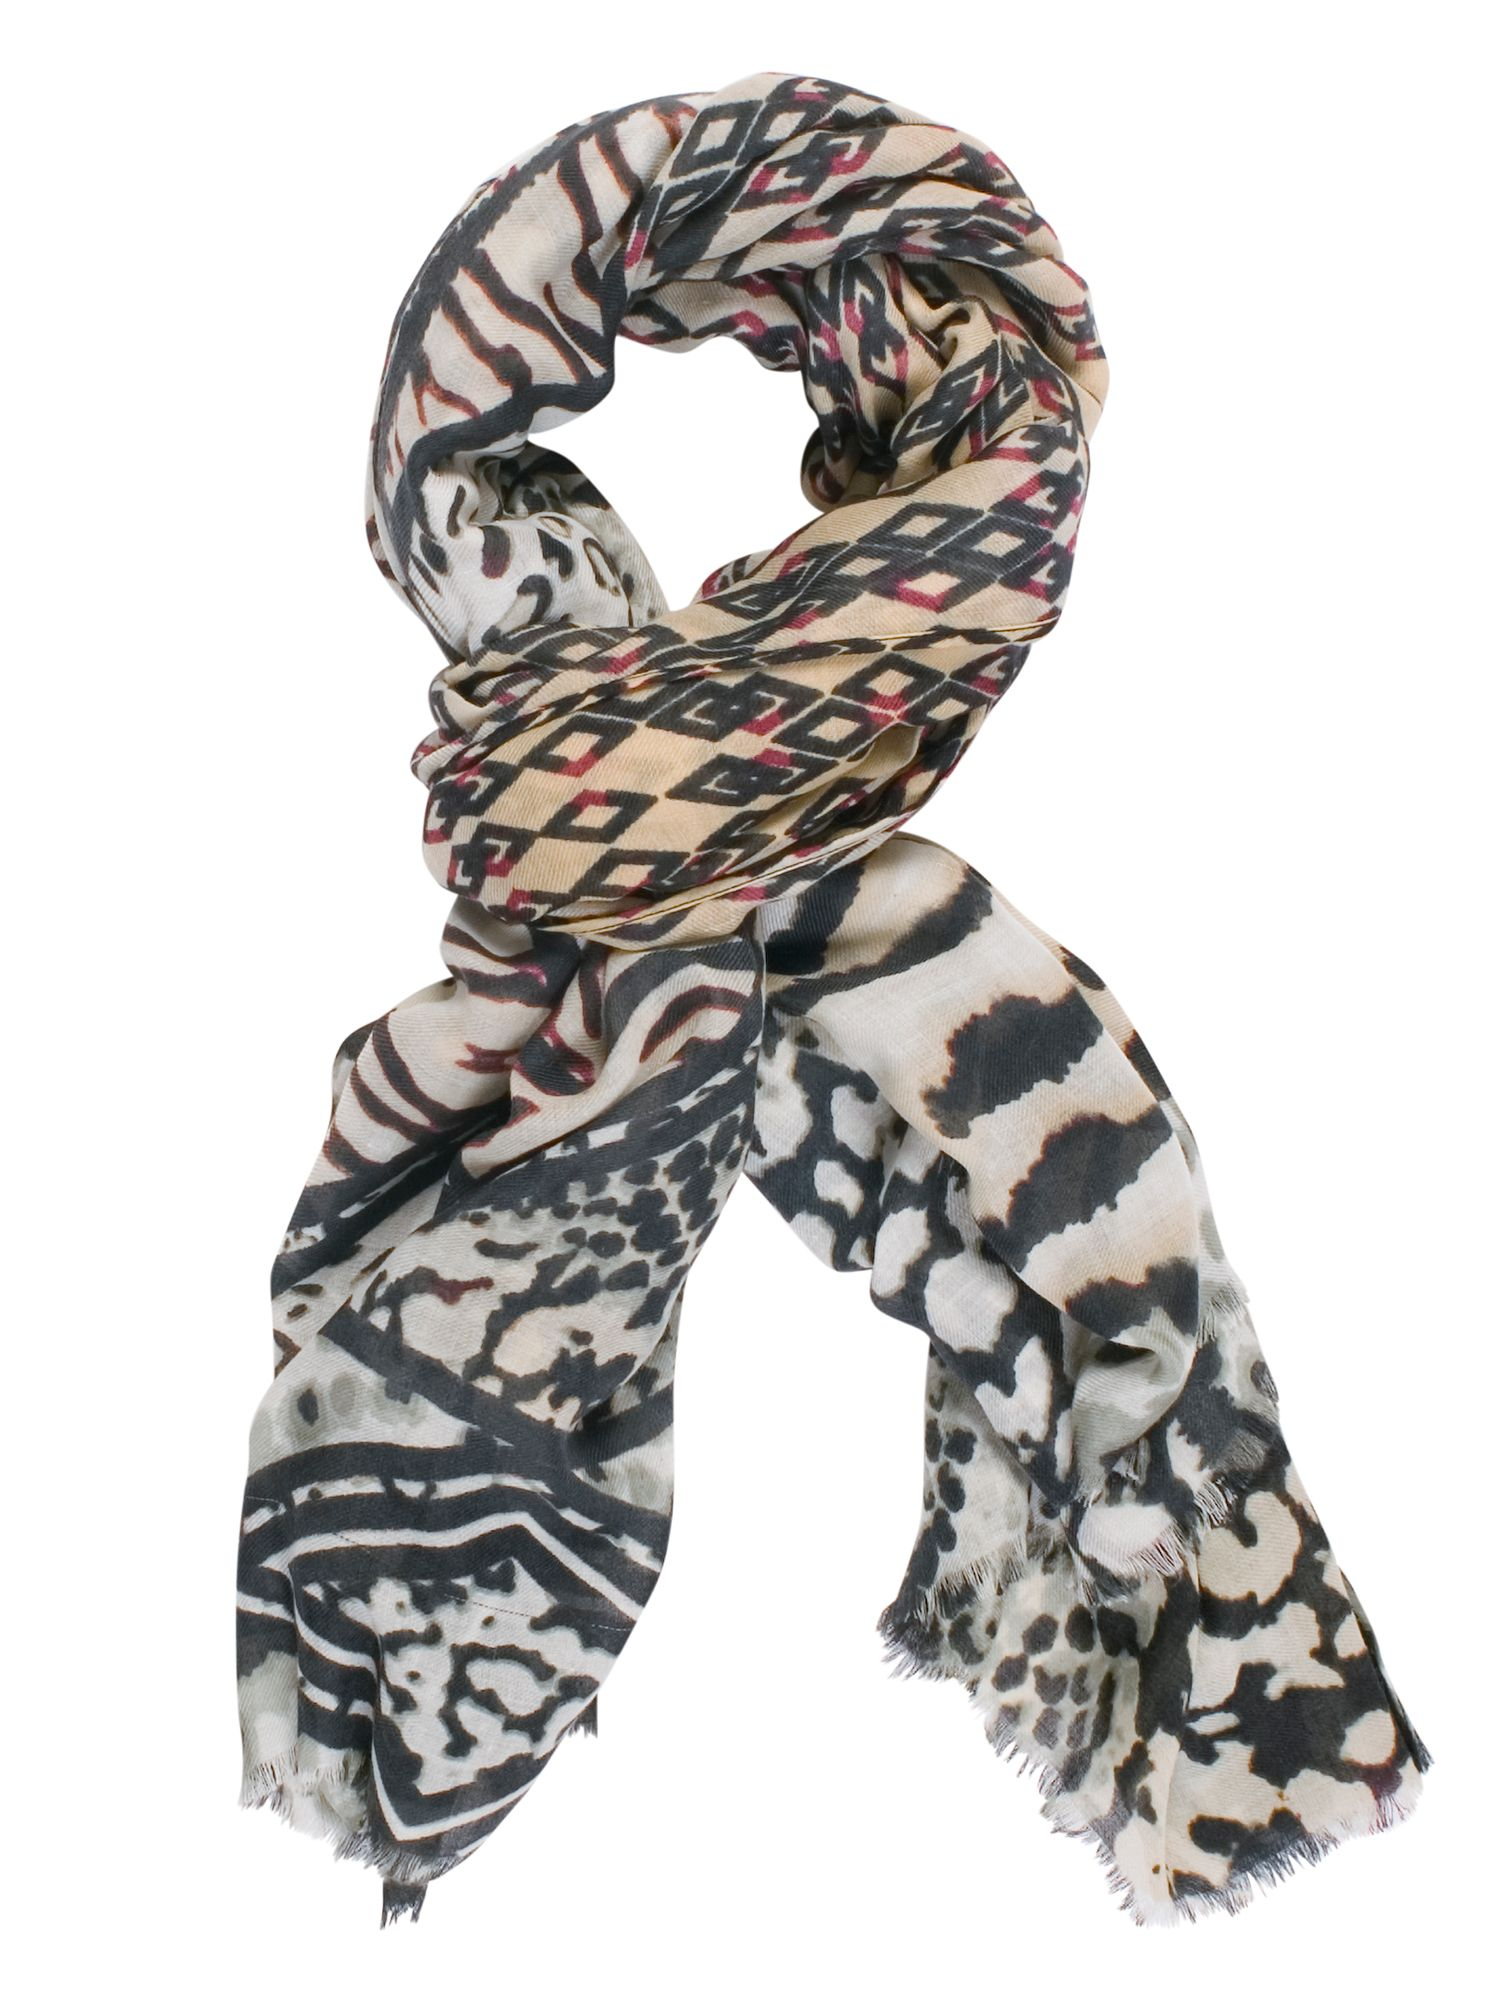 Chesca Aztec Printed Scarf, Multi-Coloured